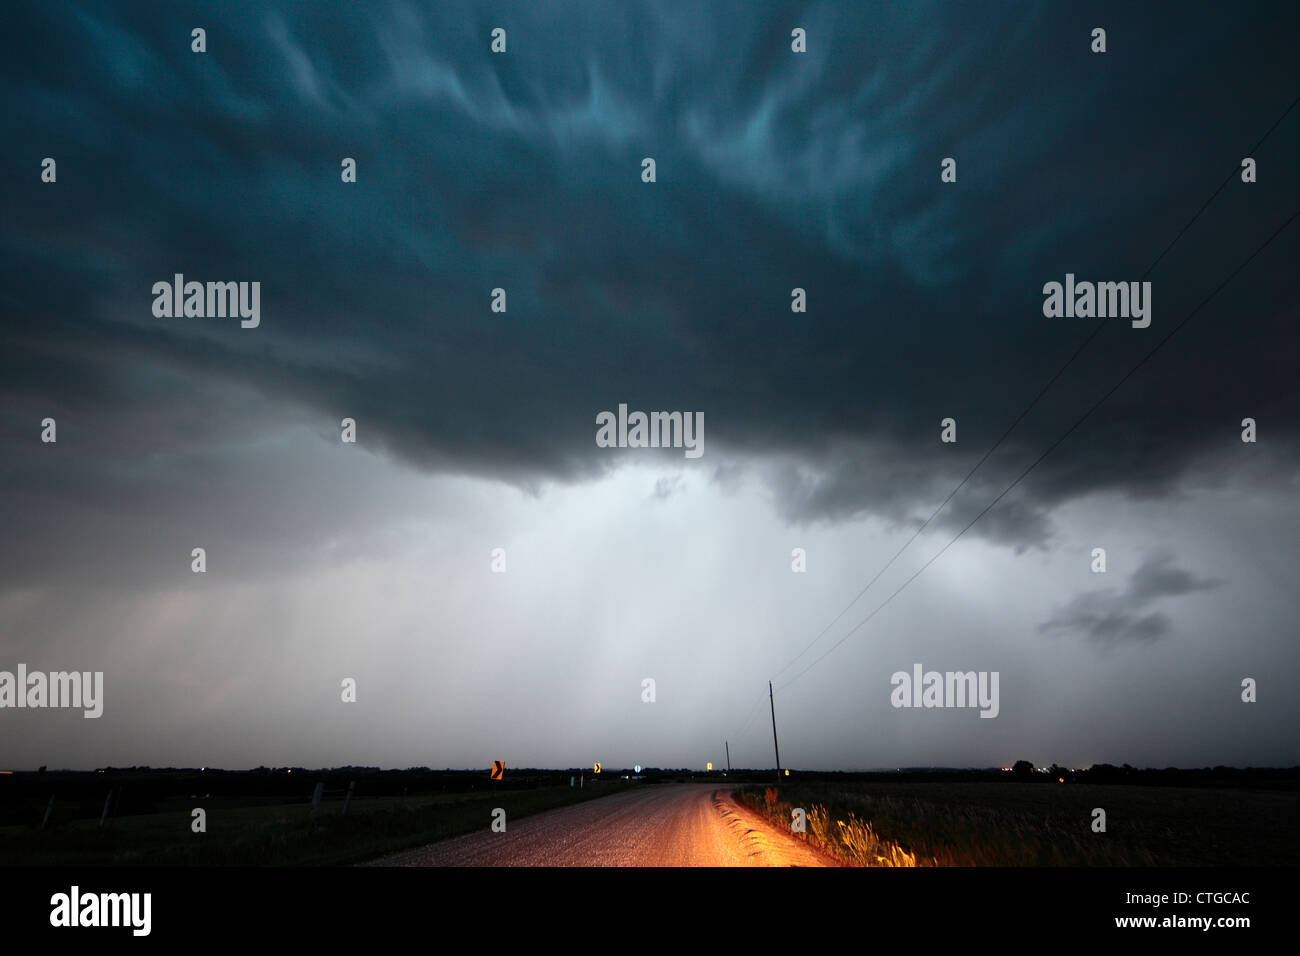 A squall line thunderstorm darkens the late afternoon sky over a country road, with heavy rain and strong winds. - Stock Image